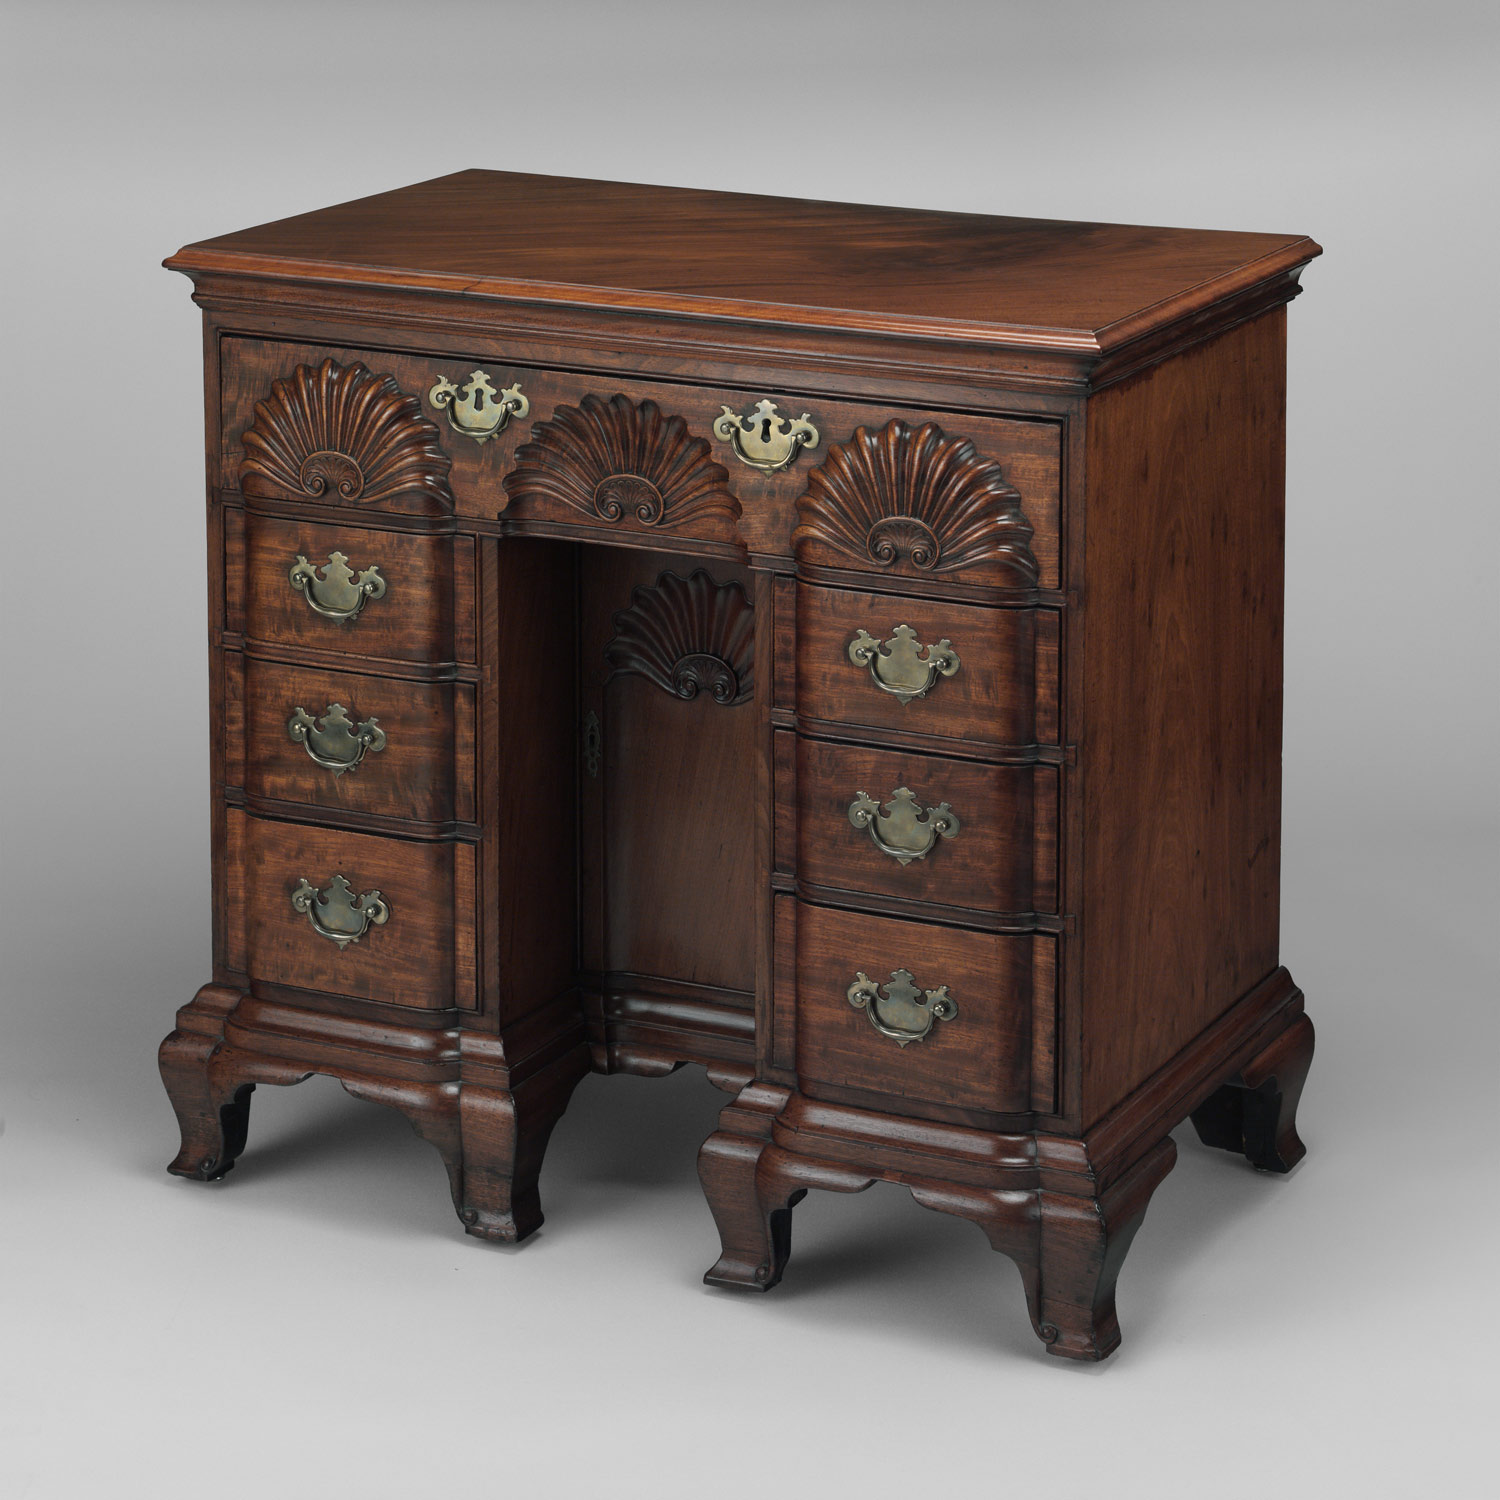 Table Bureau Bureau Table Attributed To John Townsend 10 125 83 Work Of